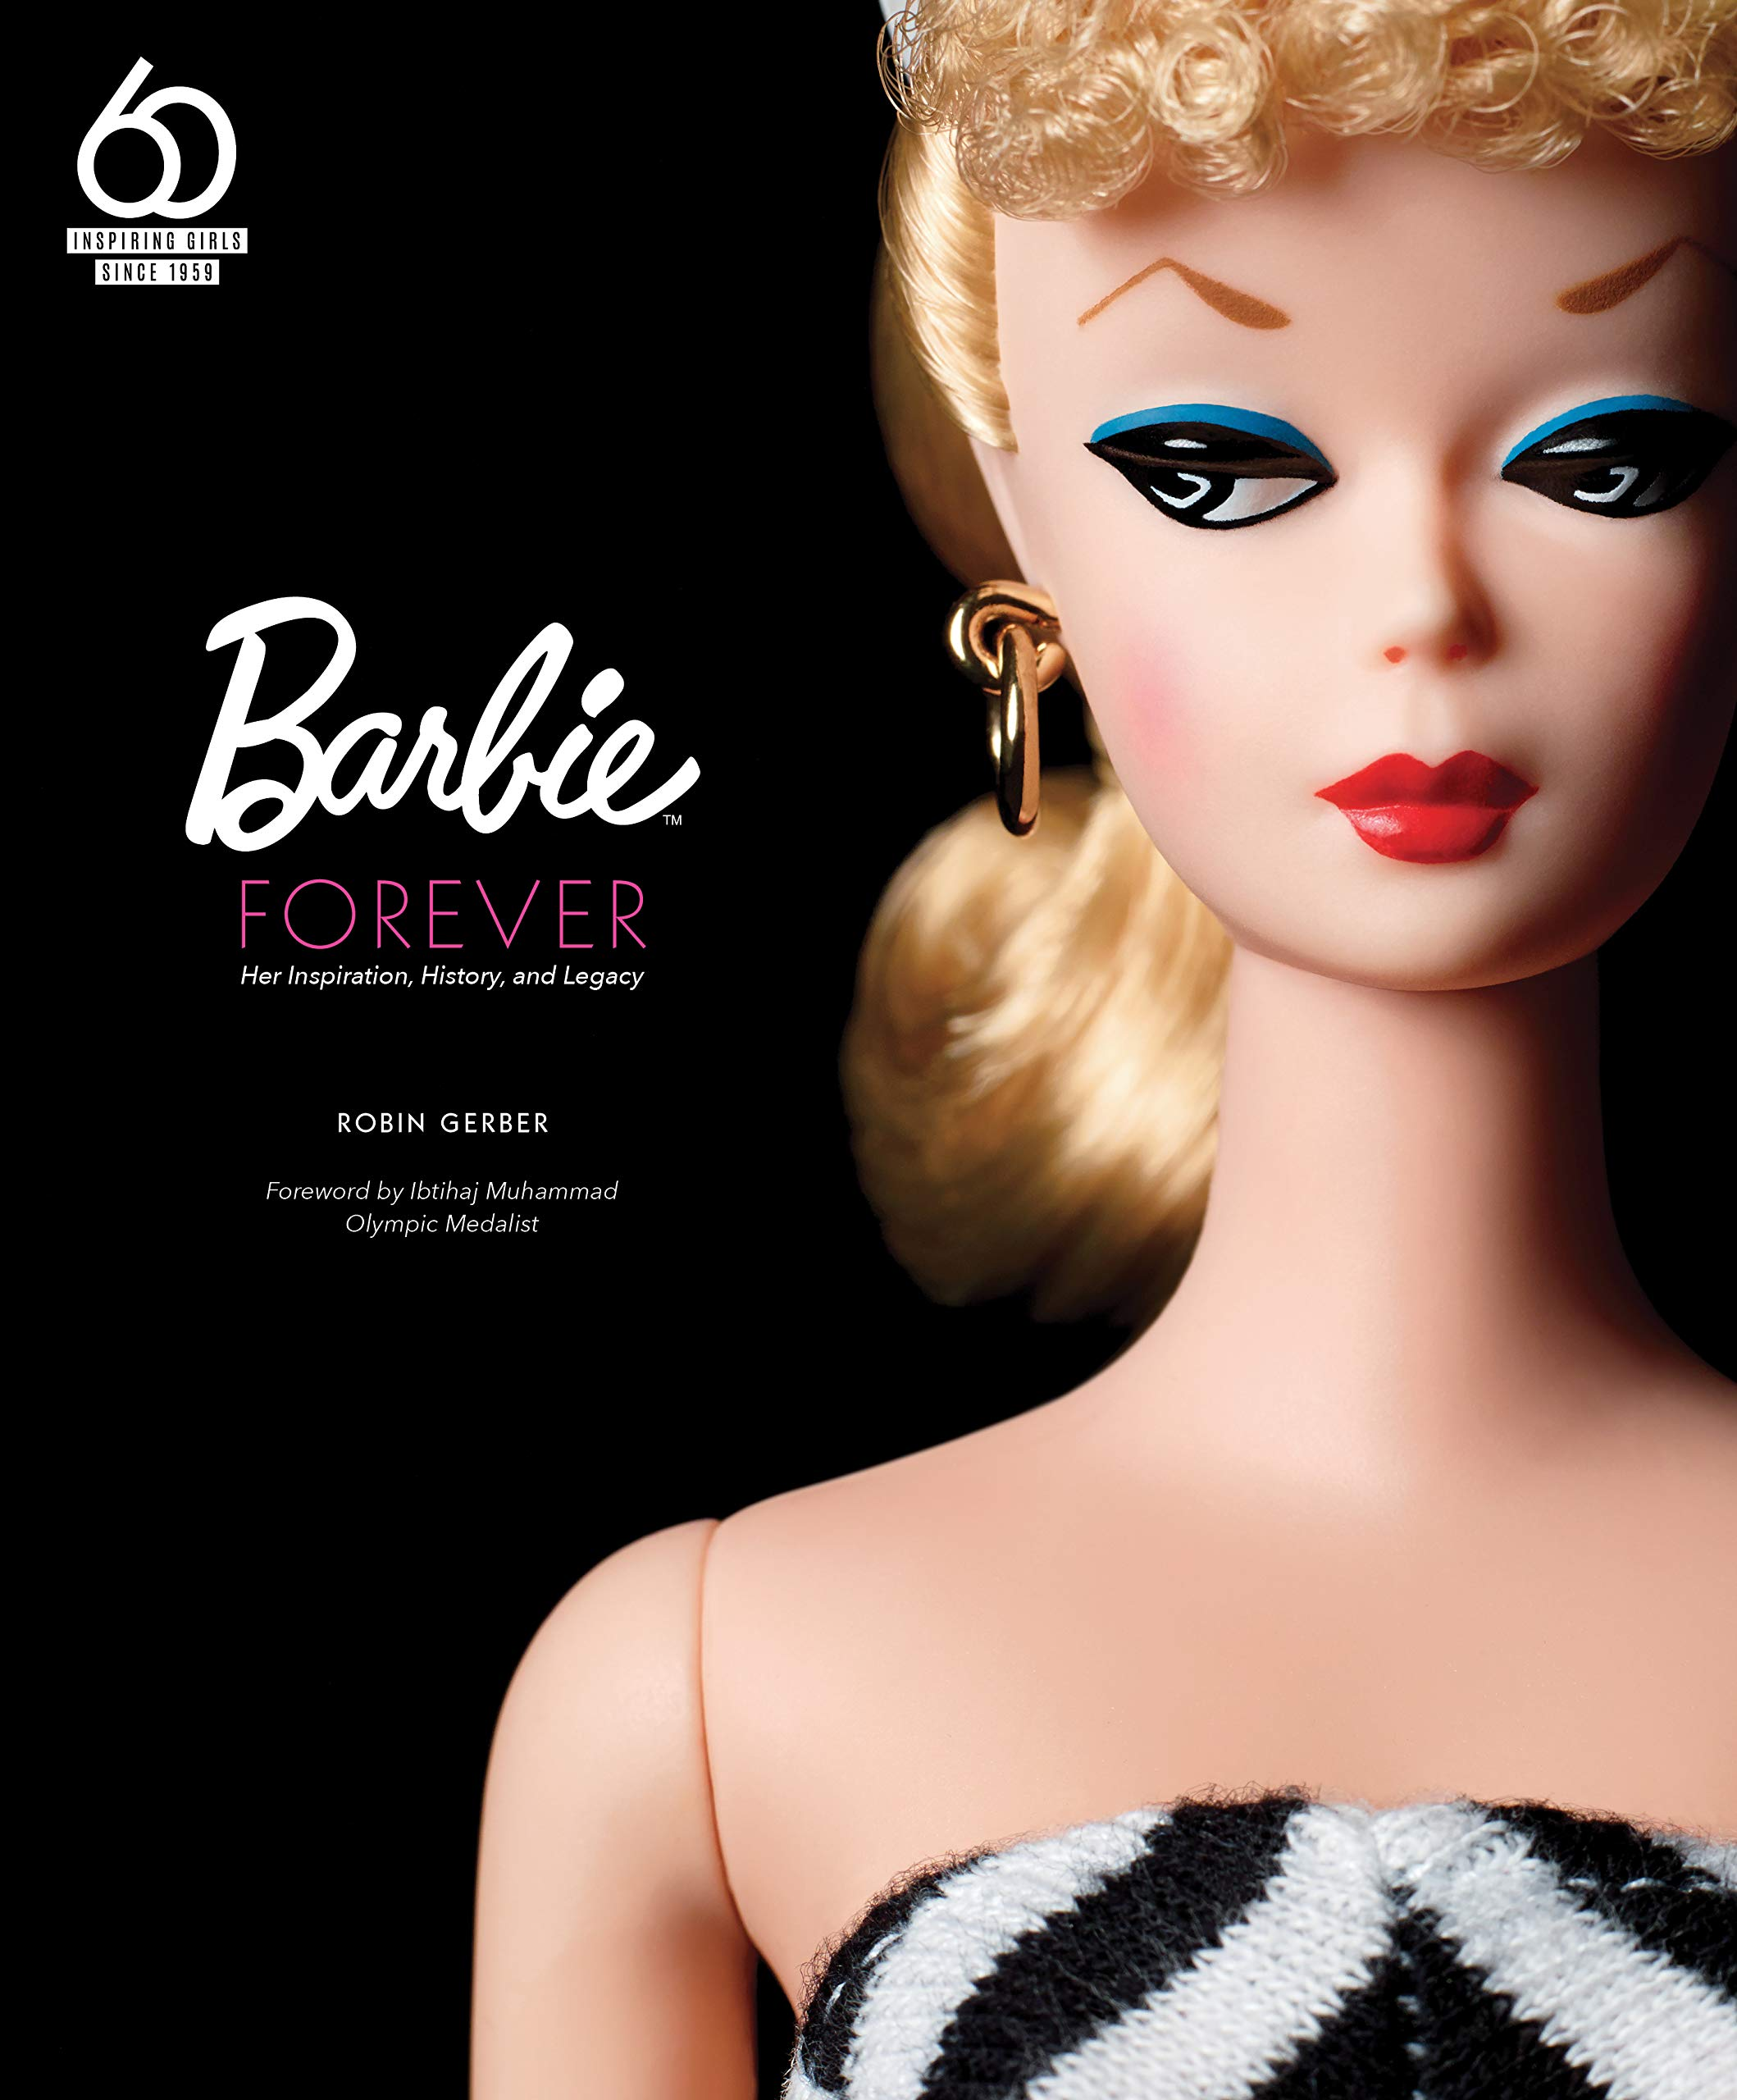 Growing up with Barbie 1959-1997 16 x 20 Poster